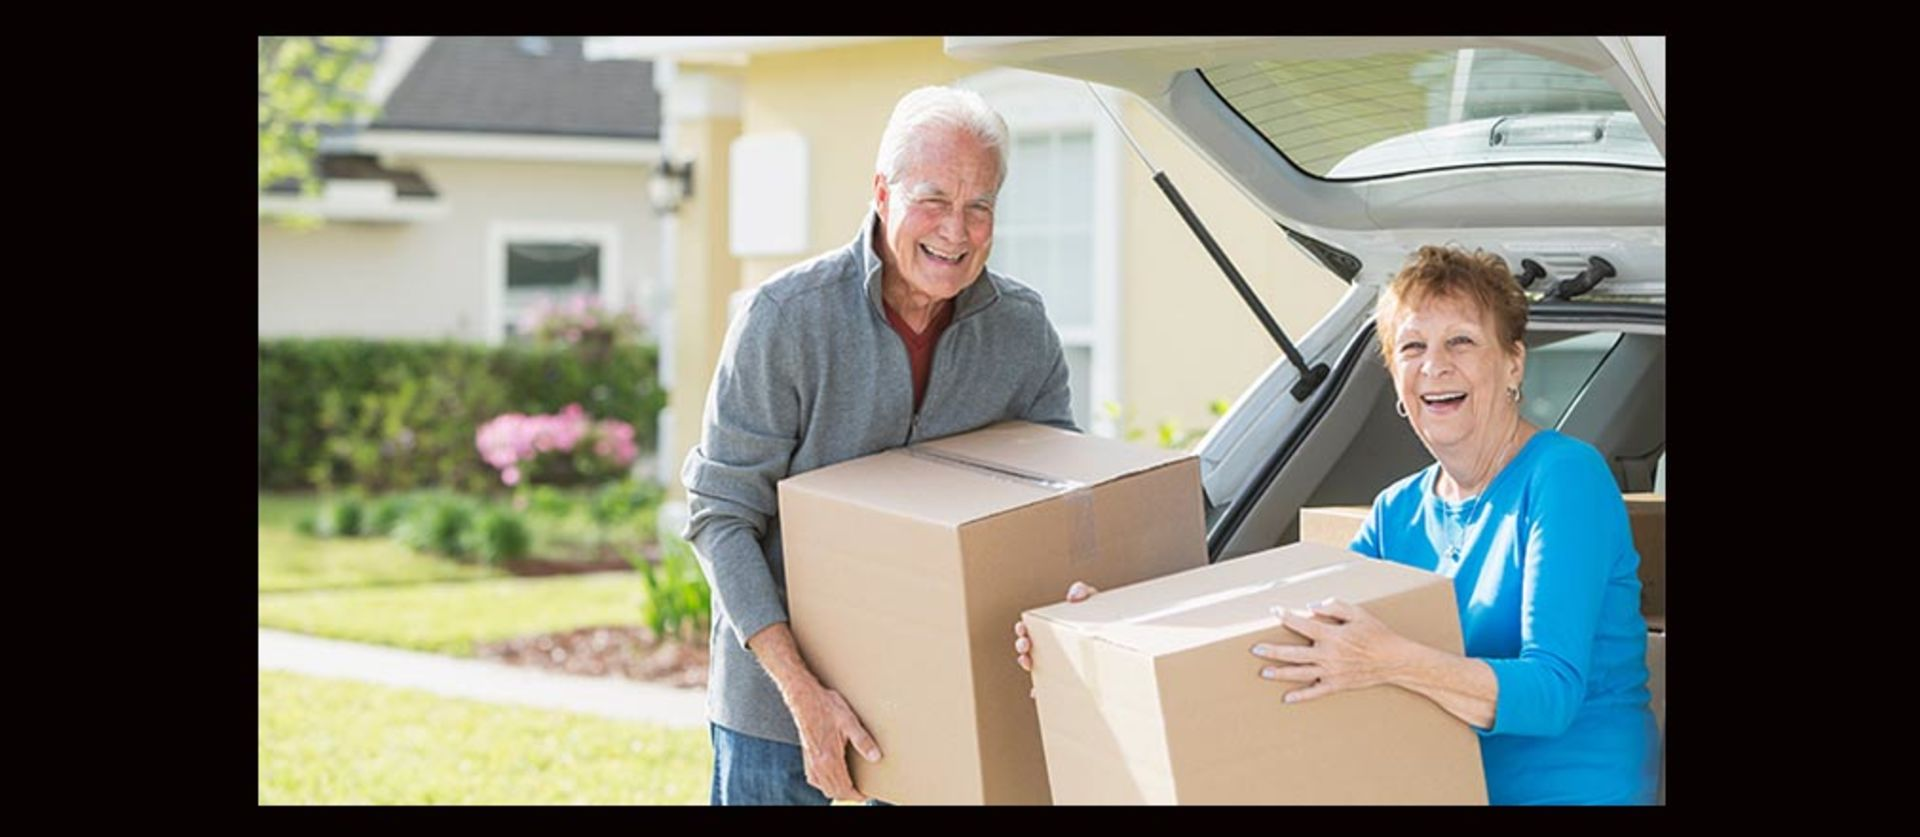 Baby Boomers are Downsizing, Are You Ready to Move